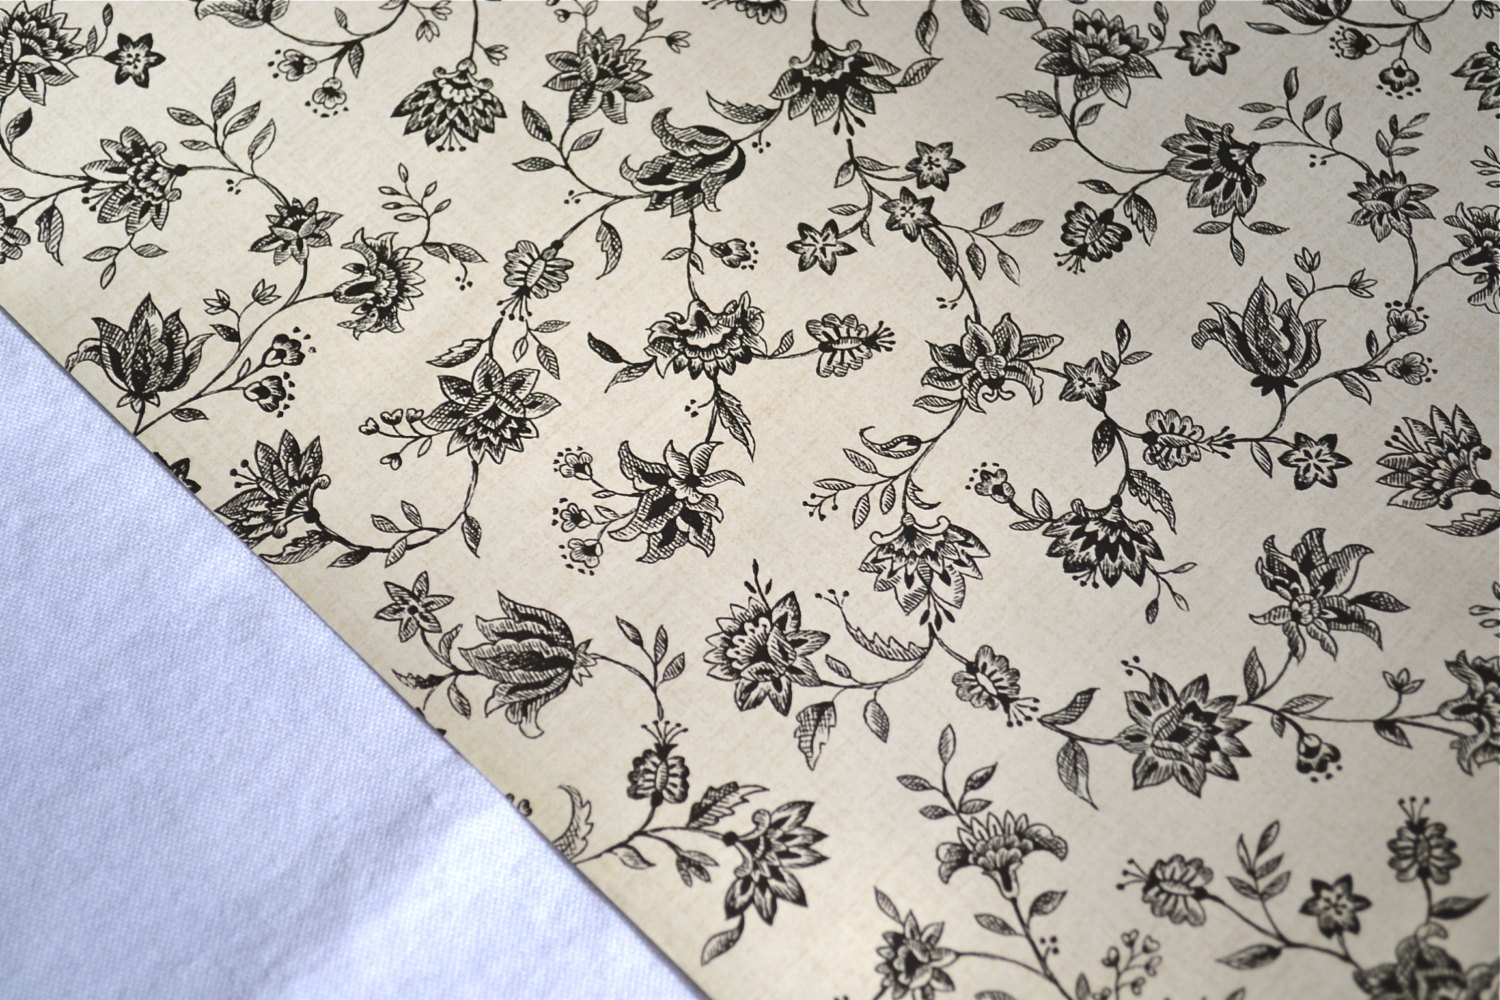 Free Download Waverly Wallpaper Black Toile Accent Floral Print By